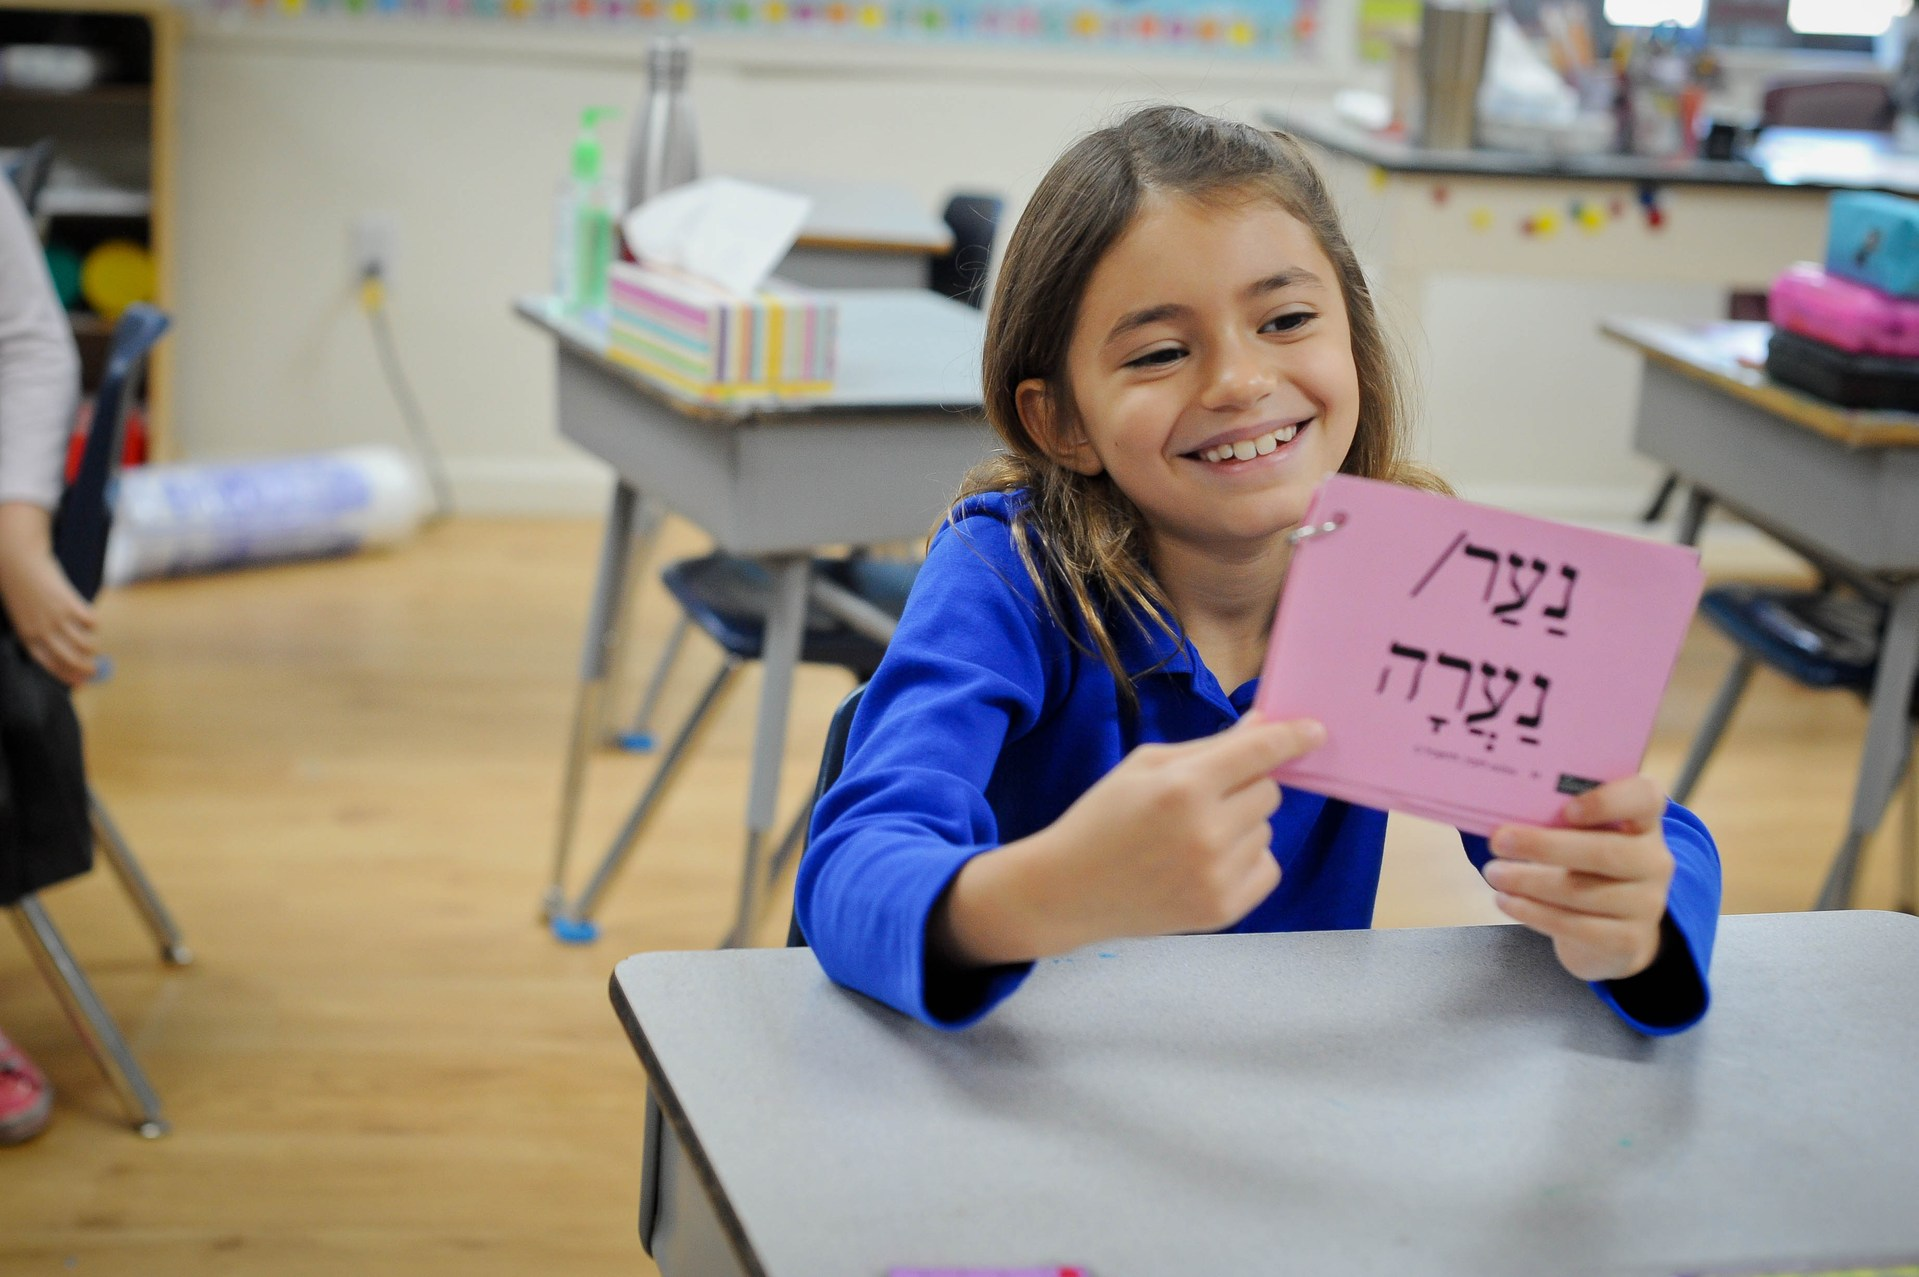 girl learning hebrew words